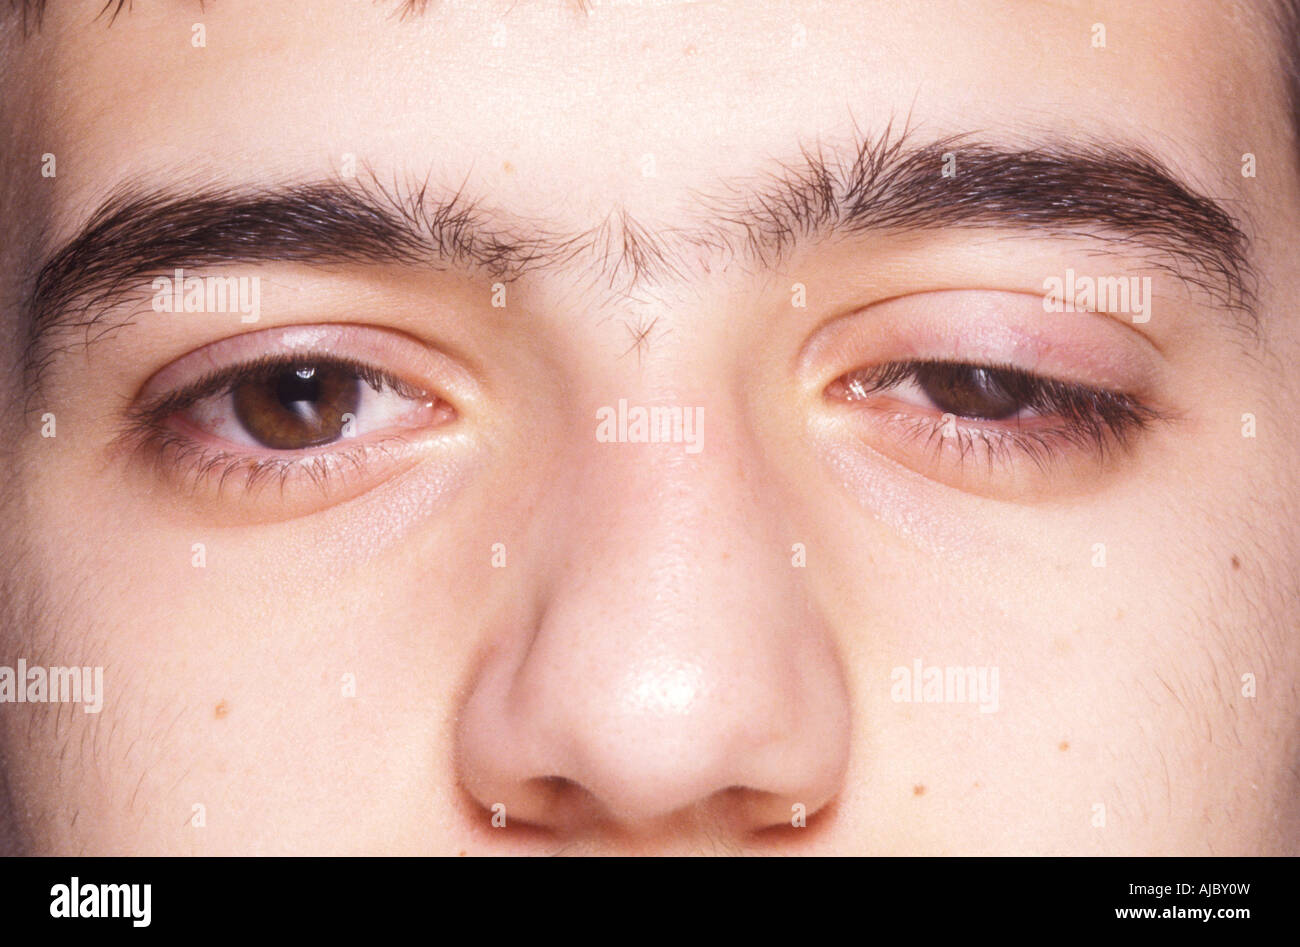 A person with ptosis is not able to lift one or both upper eyelids to uncover the eye completely - Stock Image